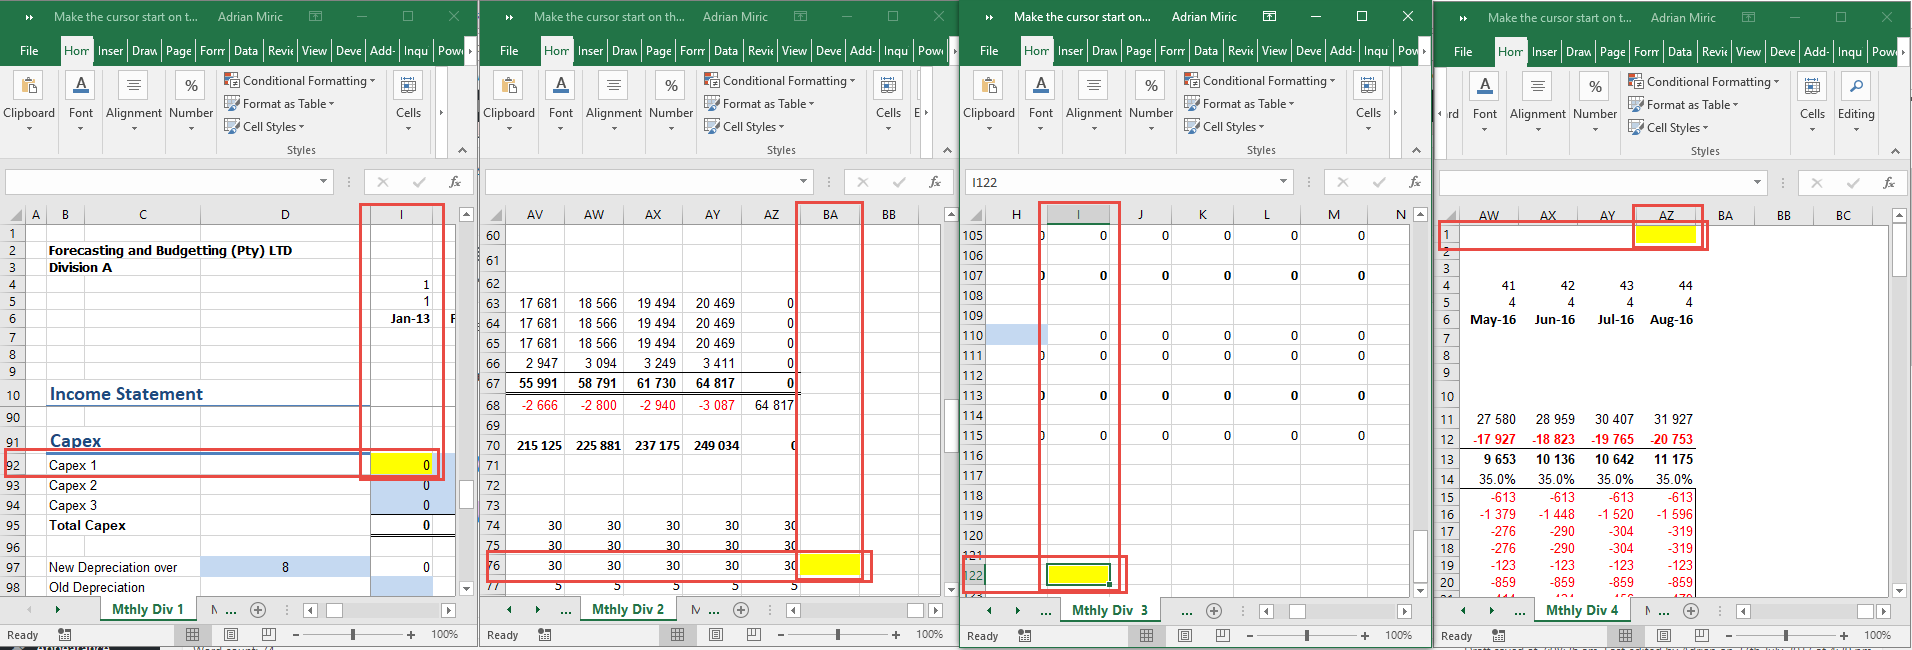 Make the cursor start on the same cell in each sheet